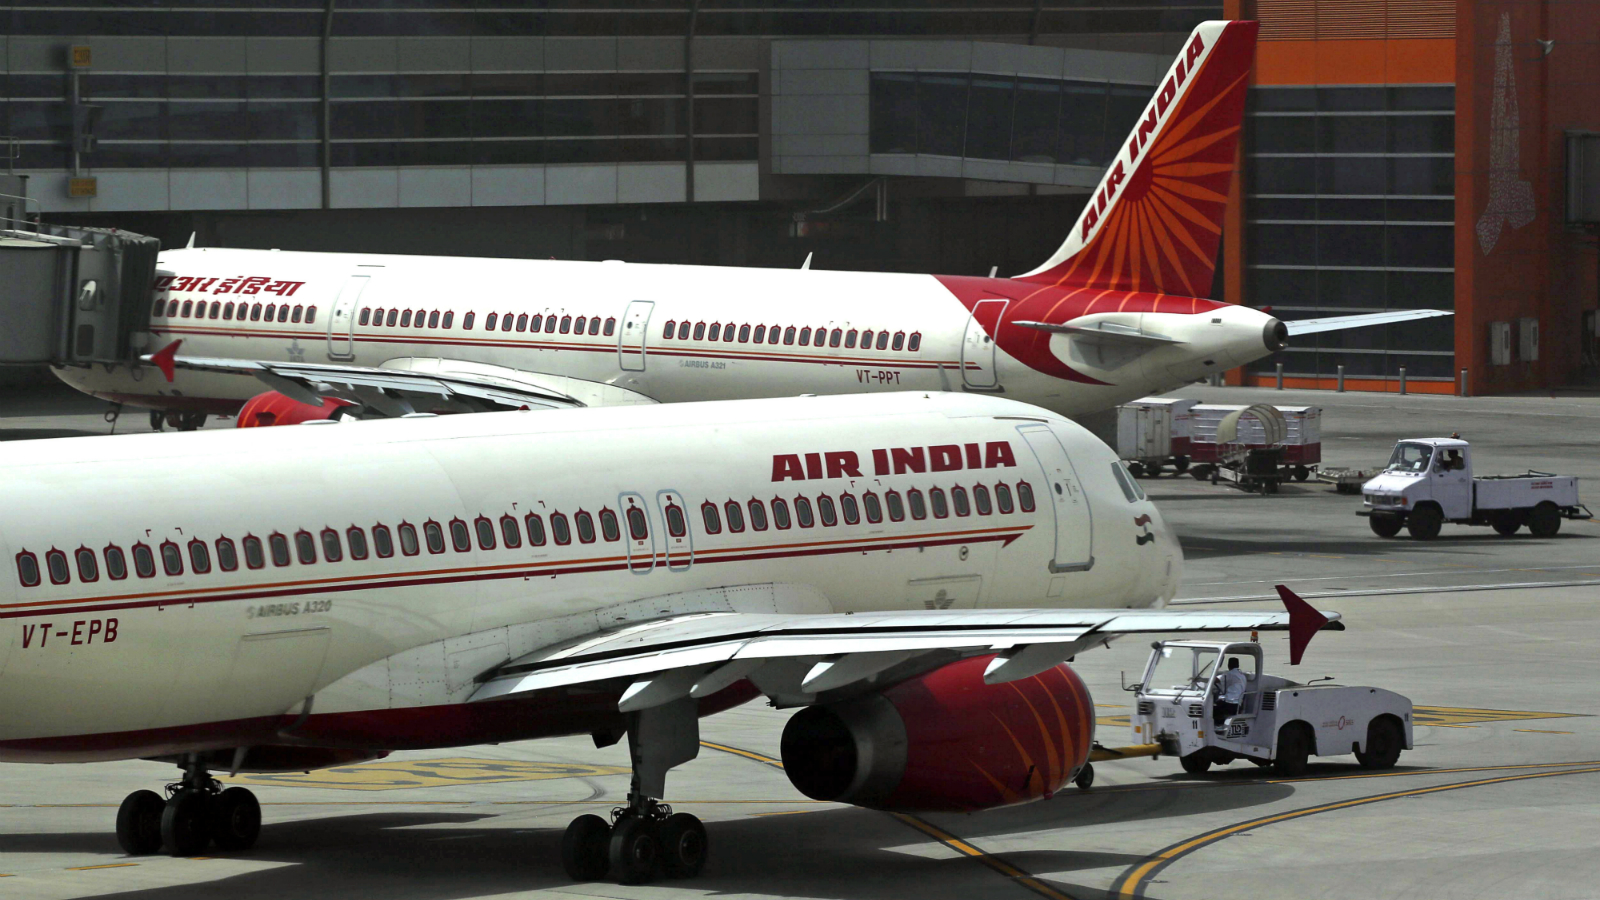 After IndiGo, Jet Airways drops idea of Air India bid